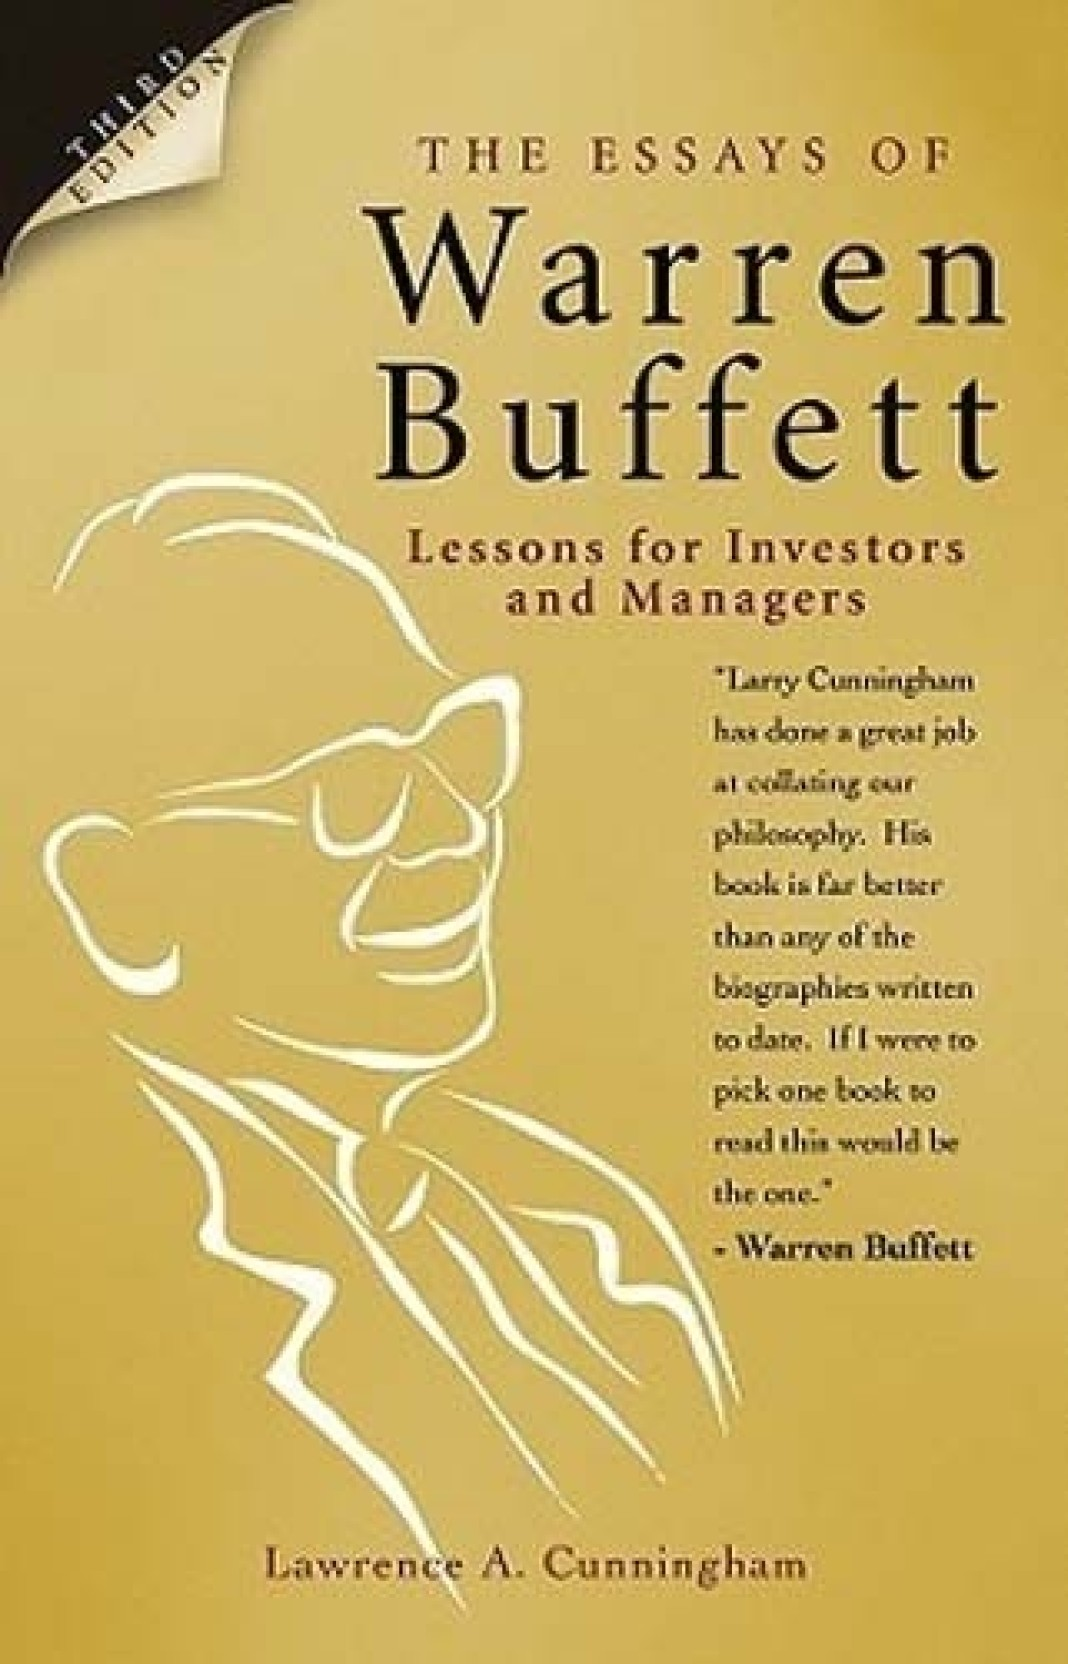 009 The Essays Of Warren Buffett Lessons For Investors And Managers Original Imaefwkrmxazxvdeq90 Essay Striking 4th Edition Free Pdf Full